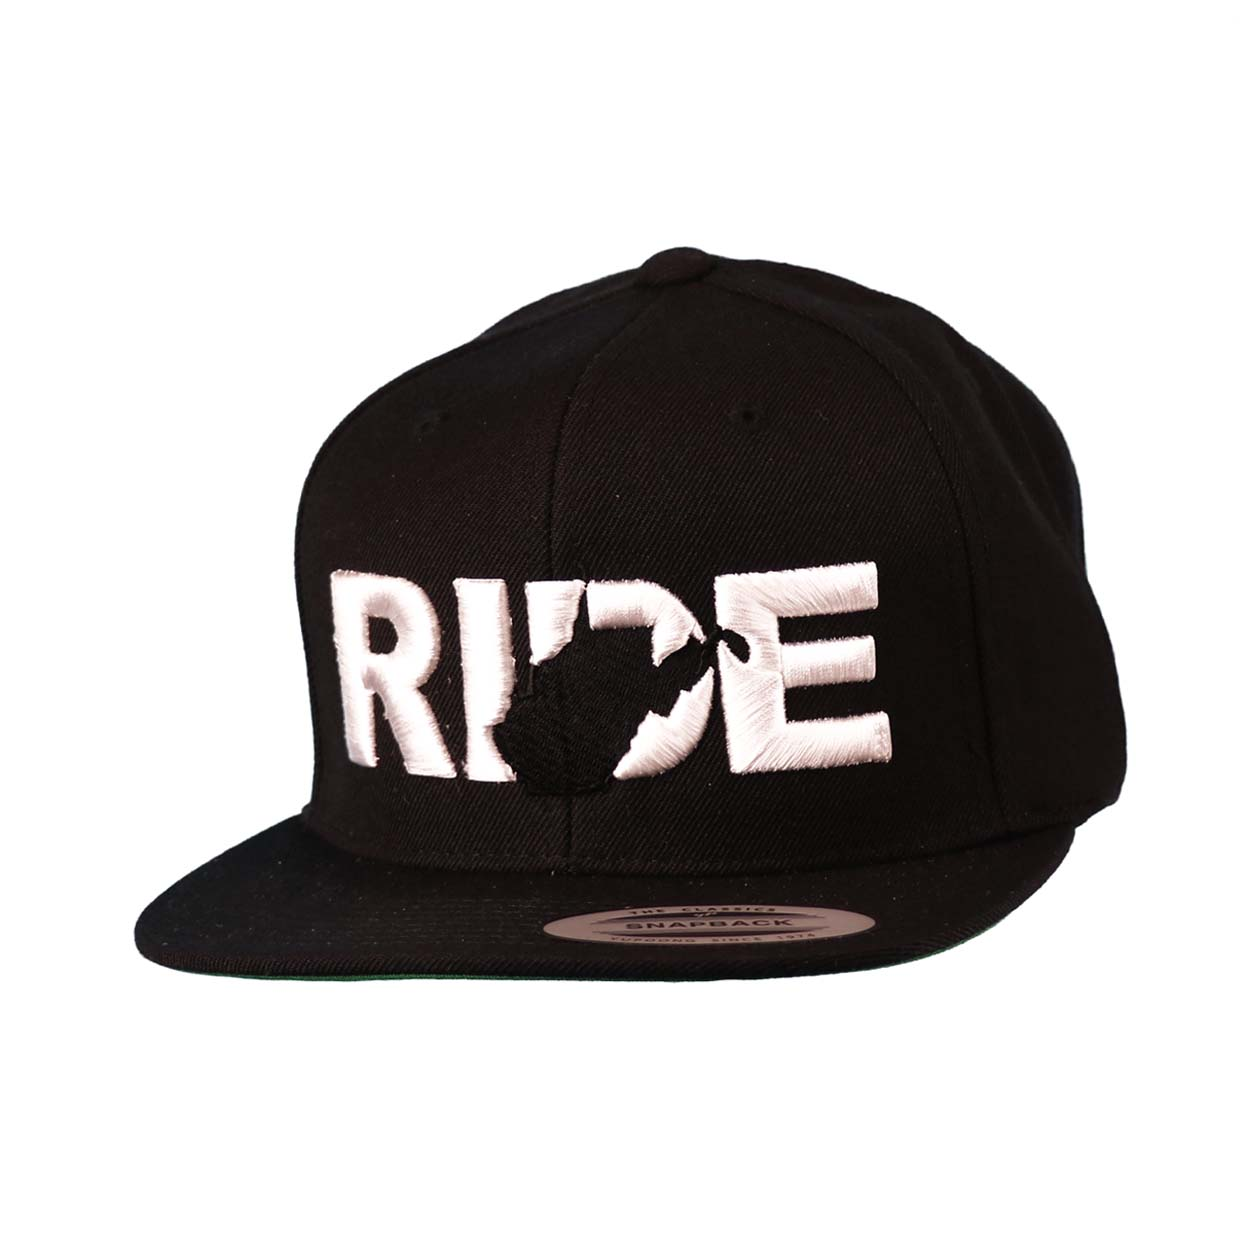 Ride West Virginia Classic Embroidered  Snapback Flat Brim Hat Black/White